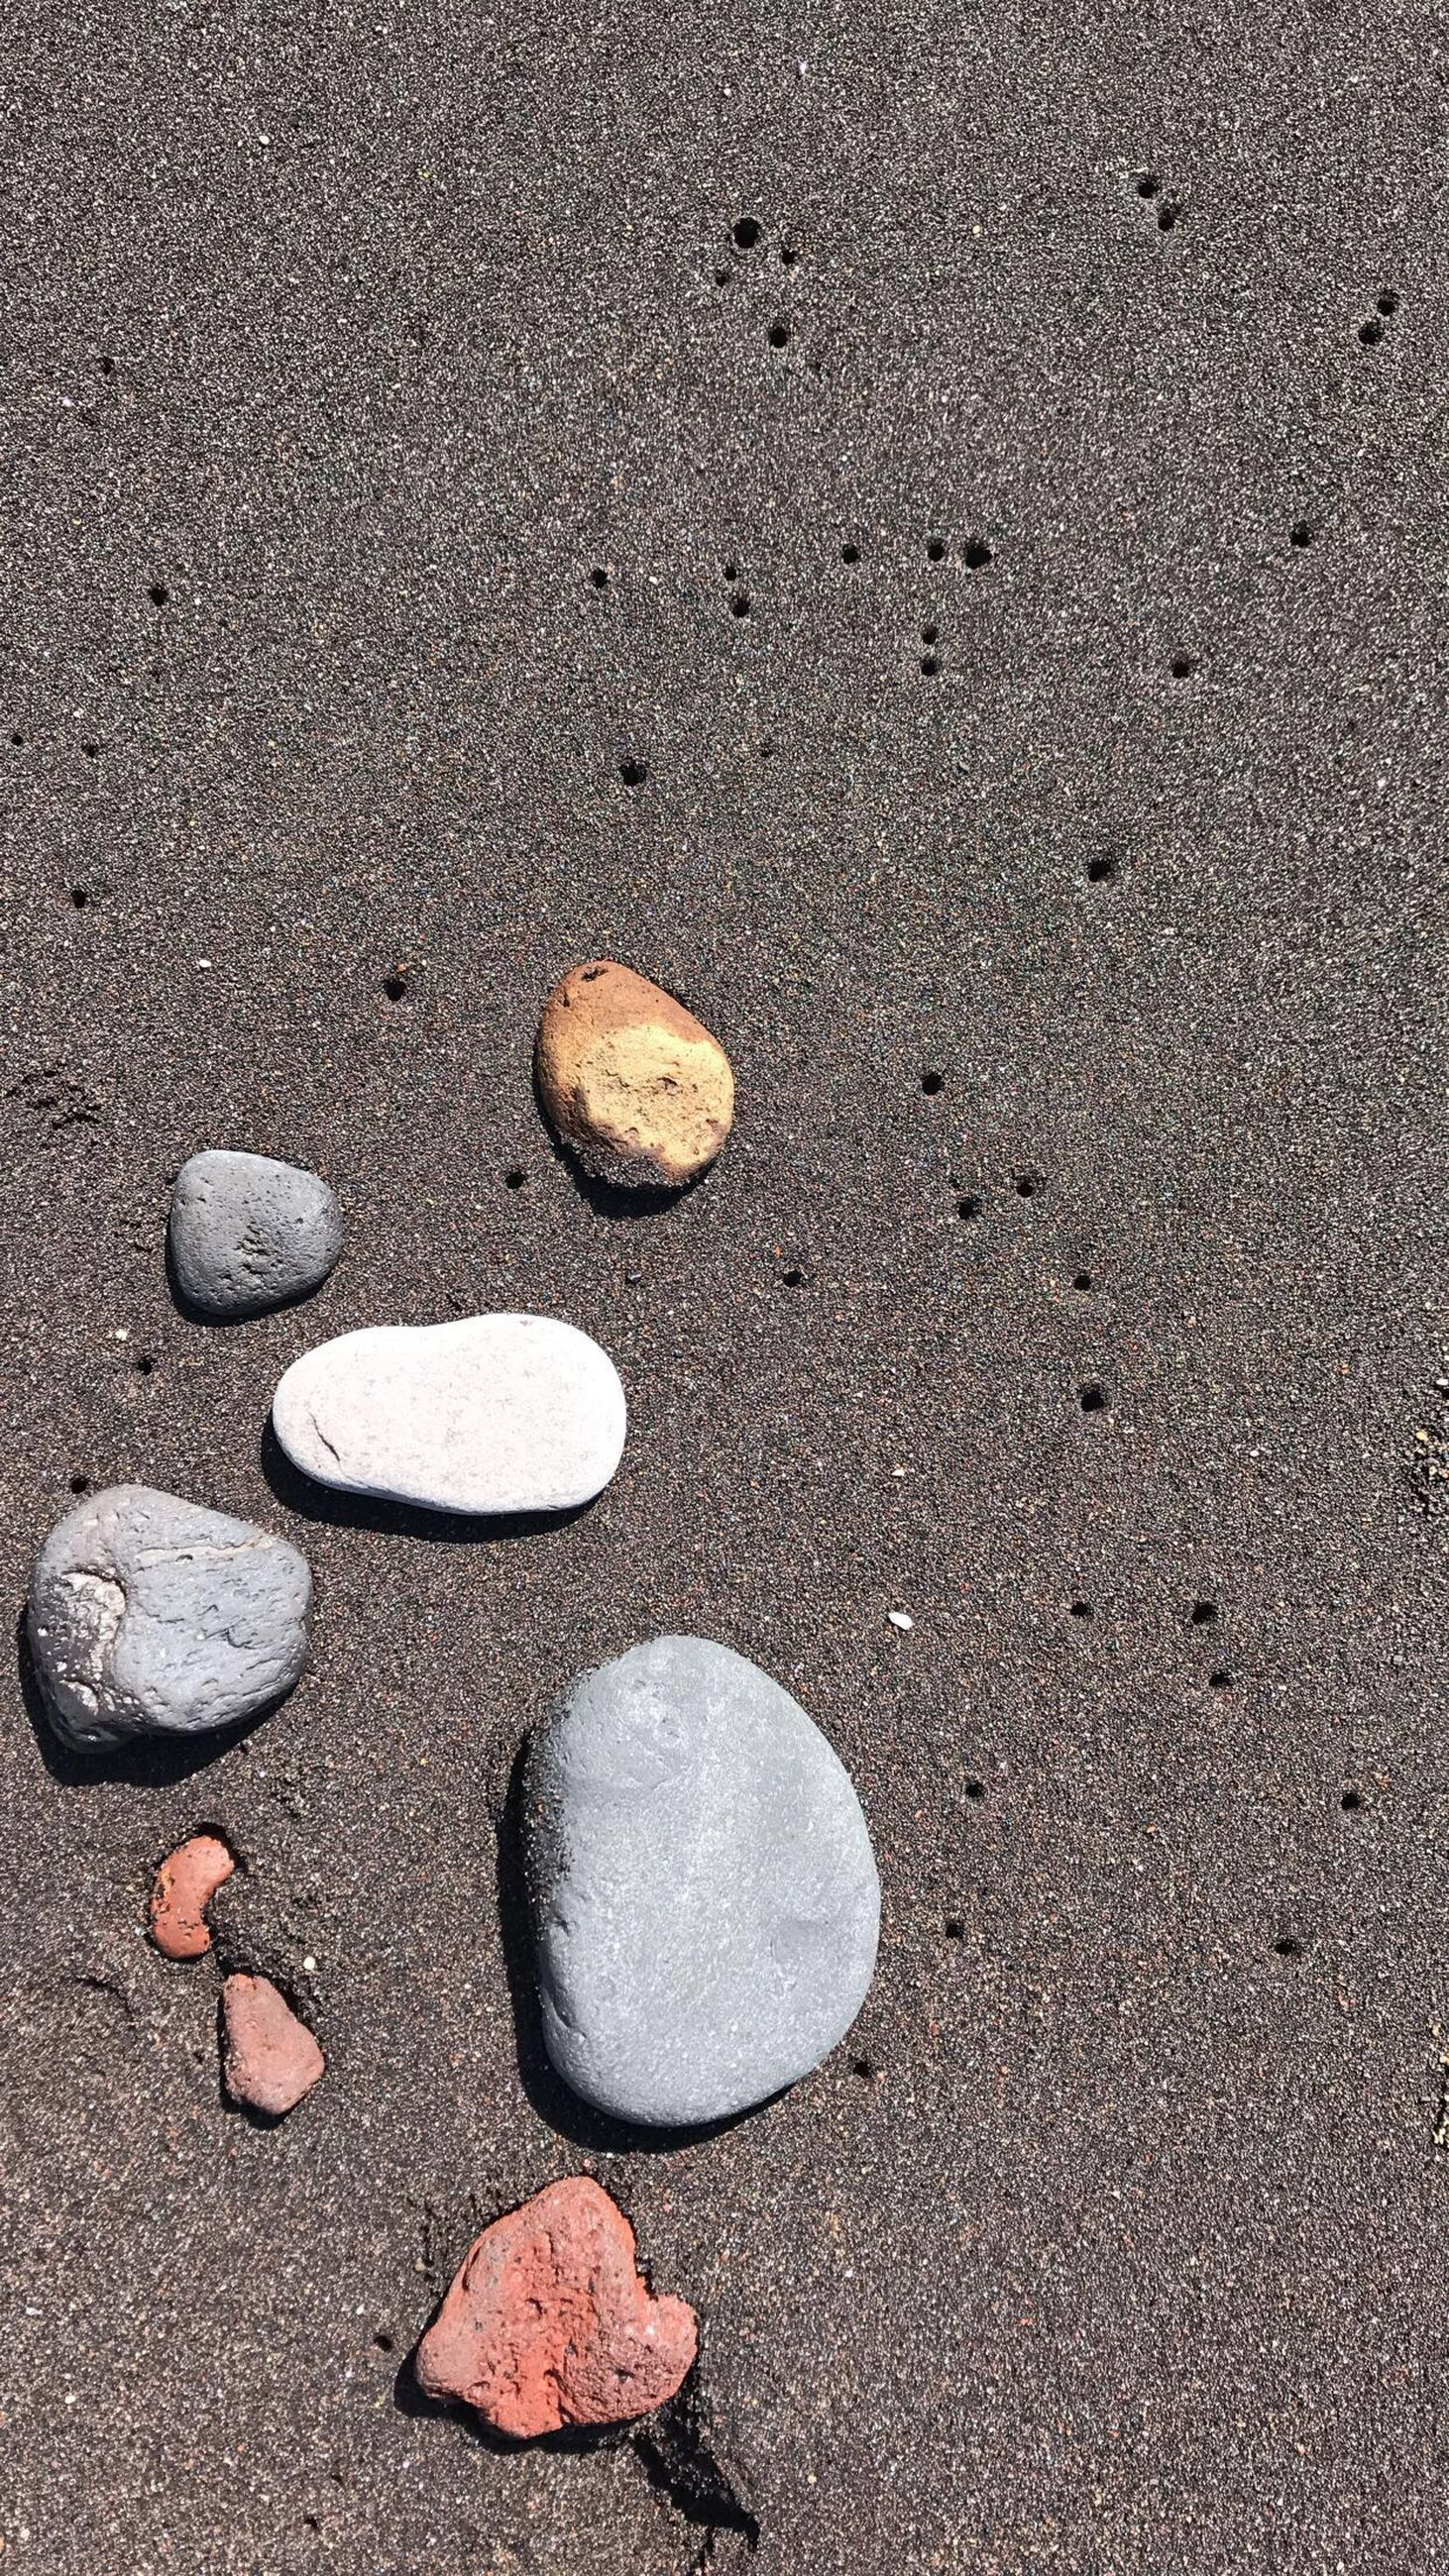 sand, no people, high angle view, beach, land, stone - object, rock, nature, day, stone, pebble, solid, beauty in nature, outdoors, still life, shell, tranquility, close-up, full frame, gray